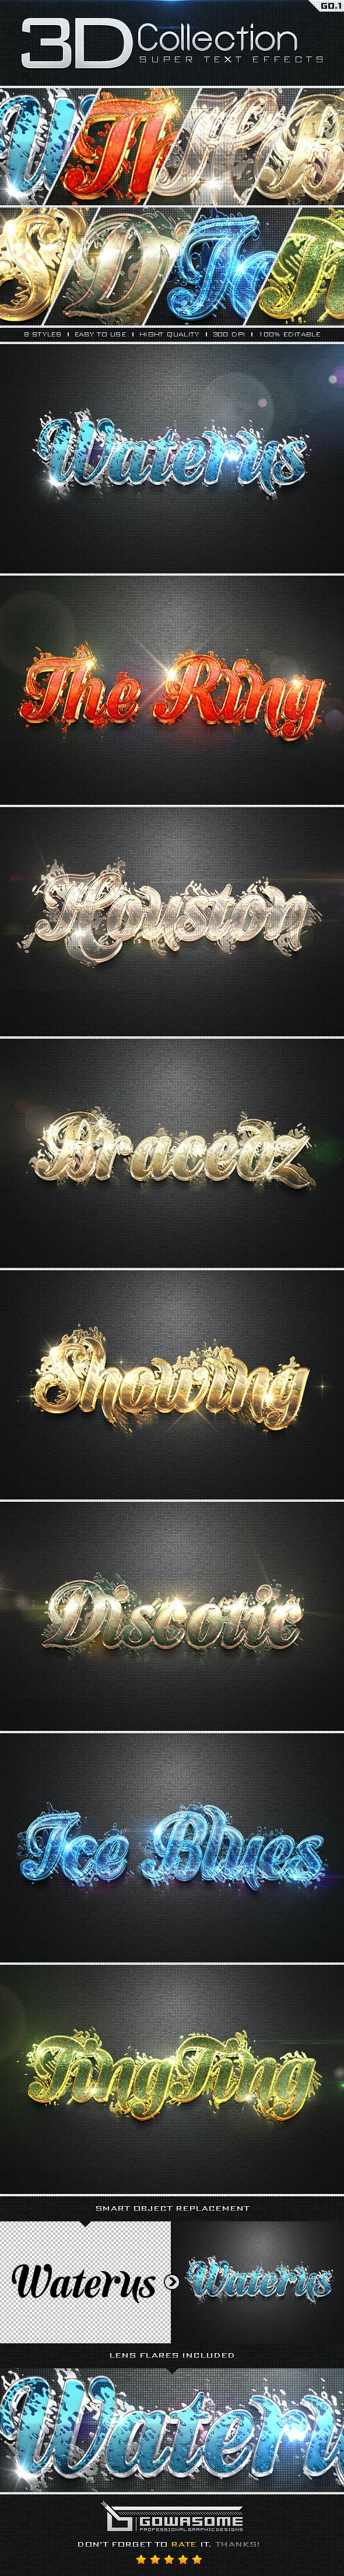 Super 3D Collection Text Effects GO.1 - Text Effects Styles